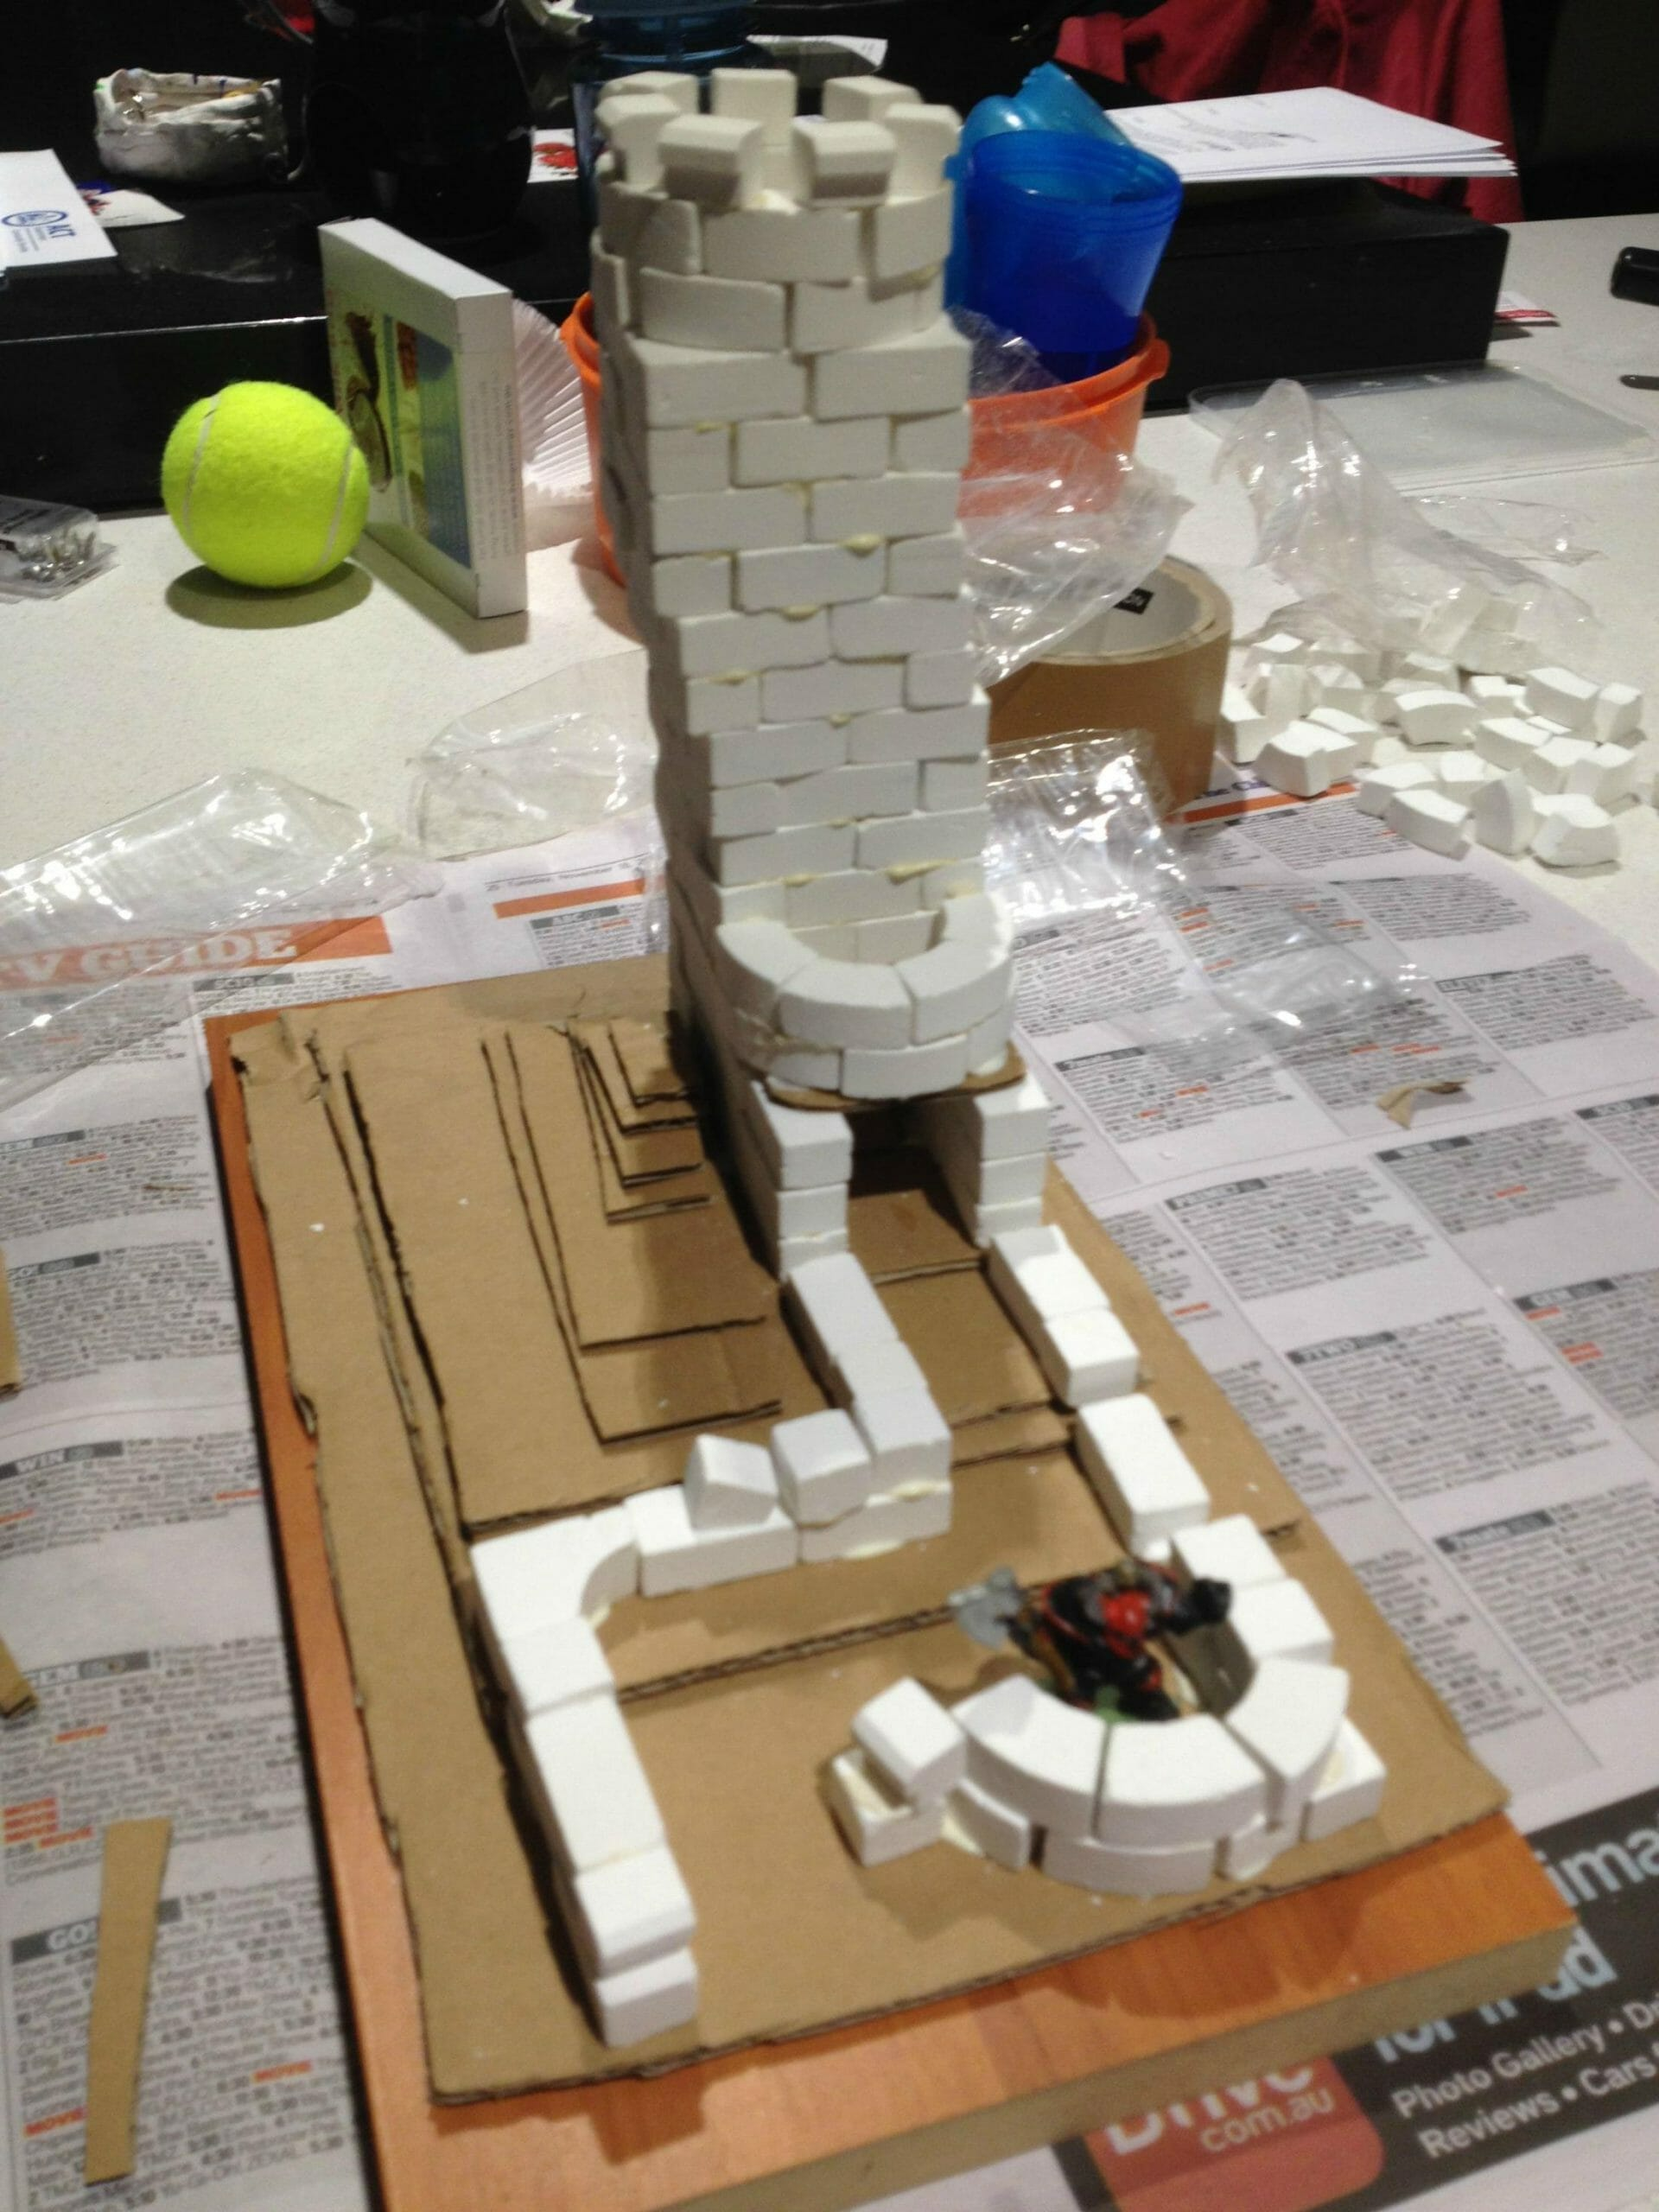 05 - Fortifications added